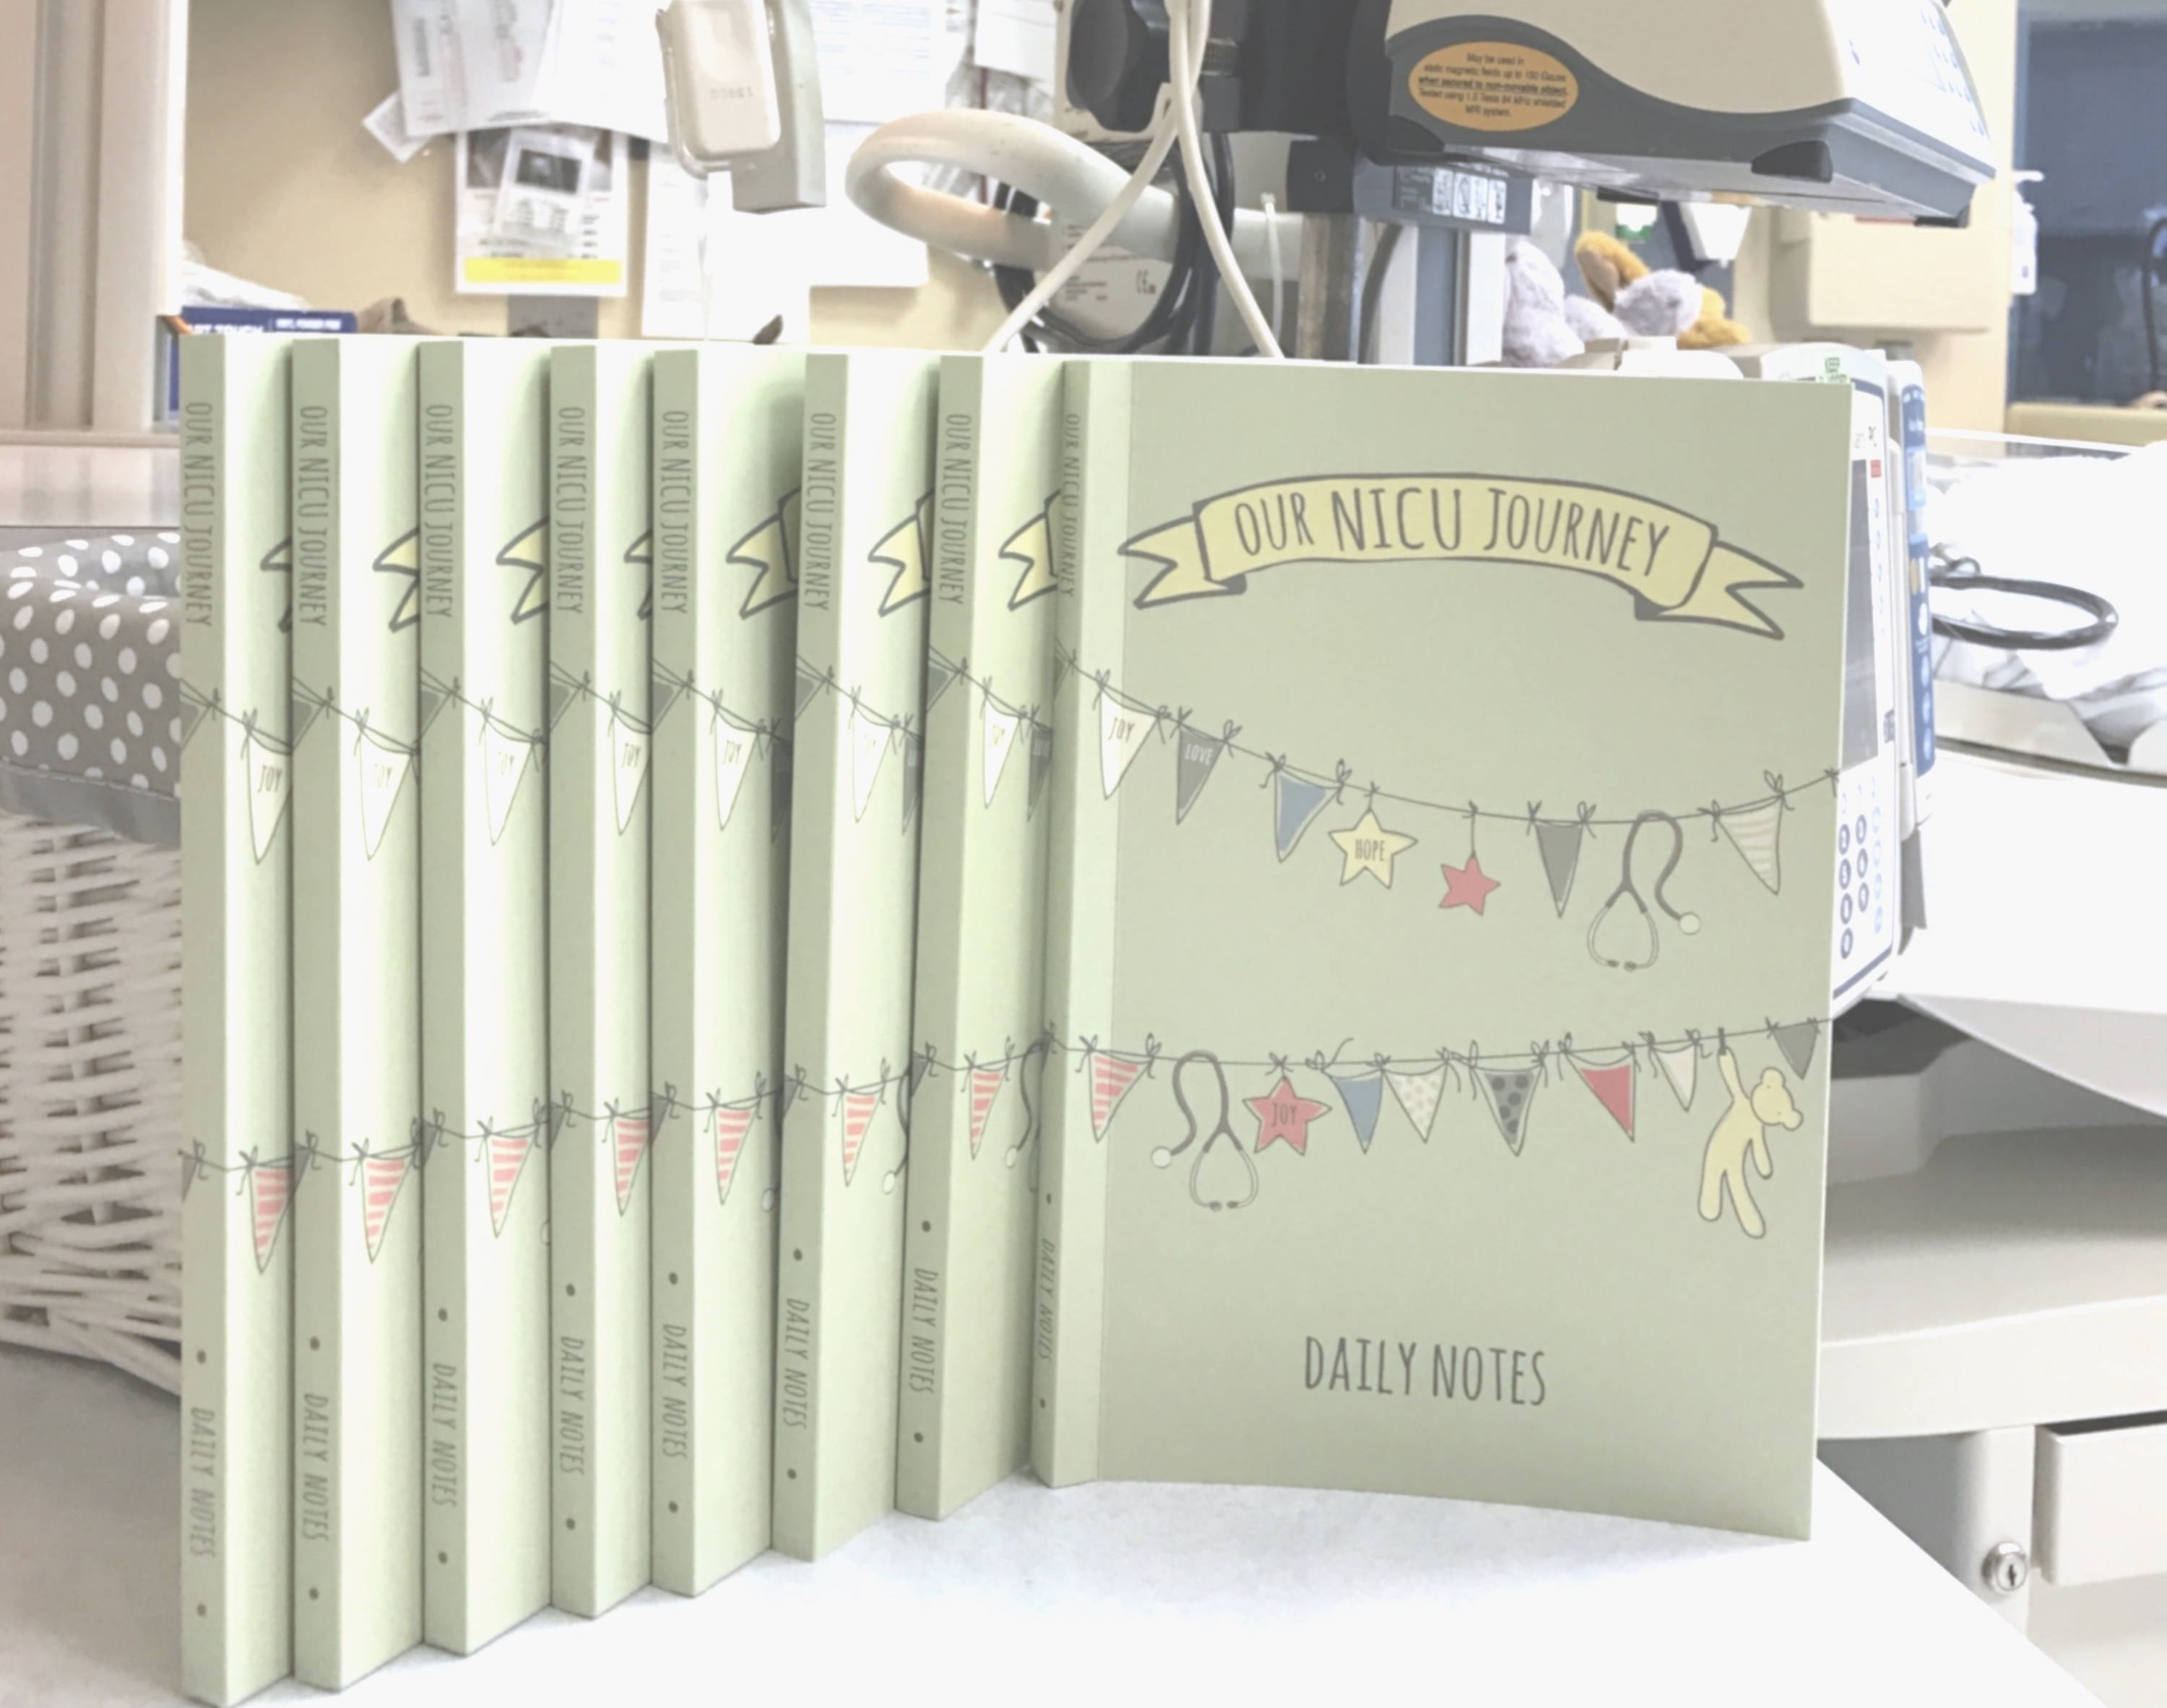 Bulk NICU Journals at hospital bedside Our NICU Journey